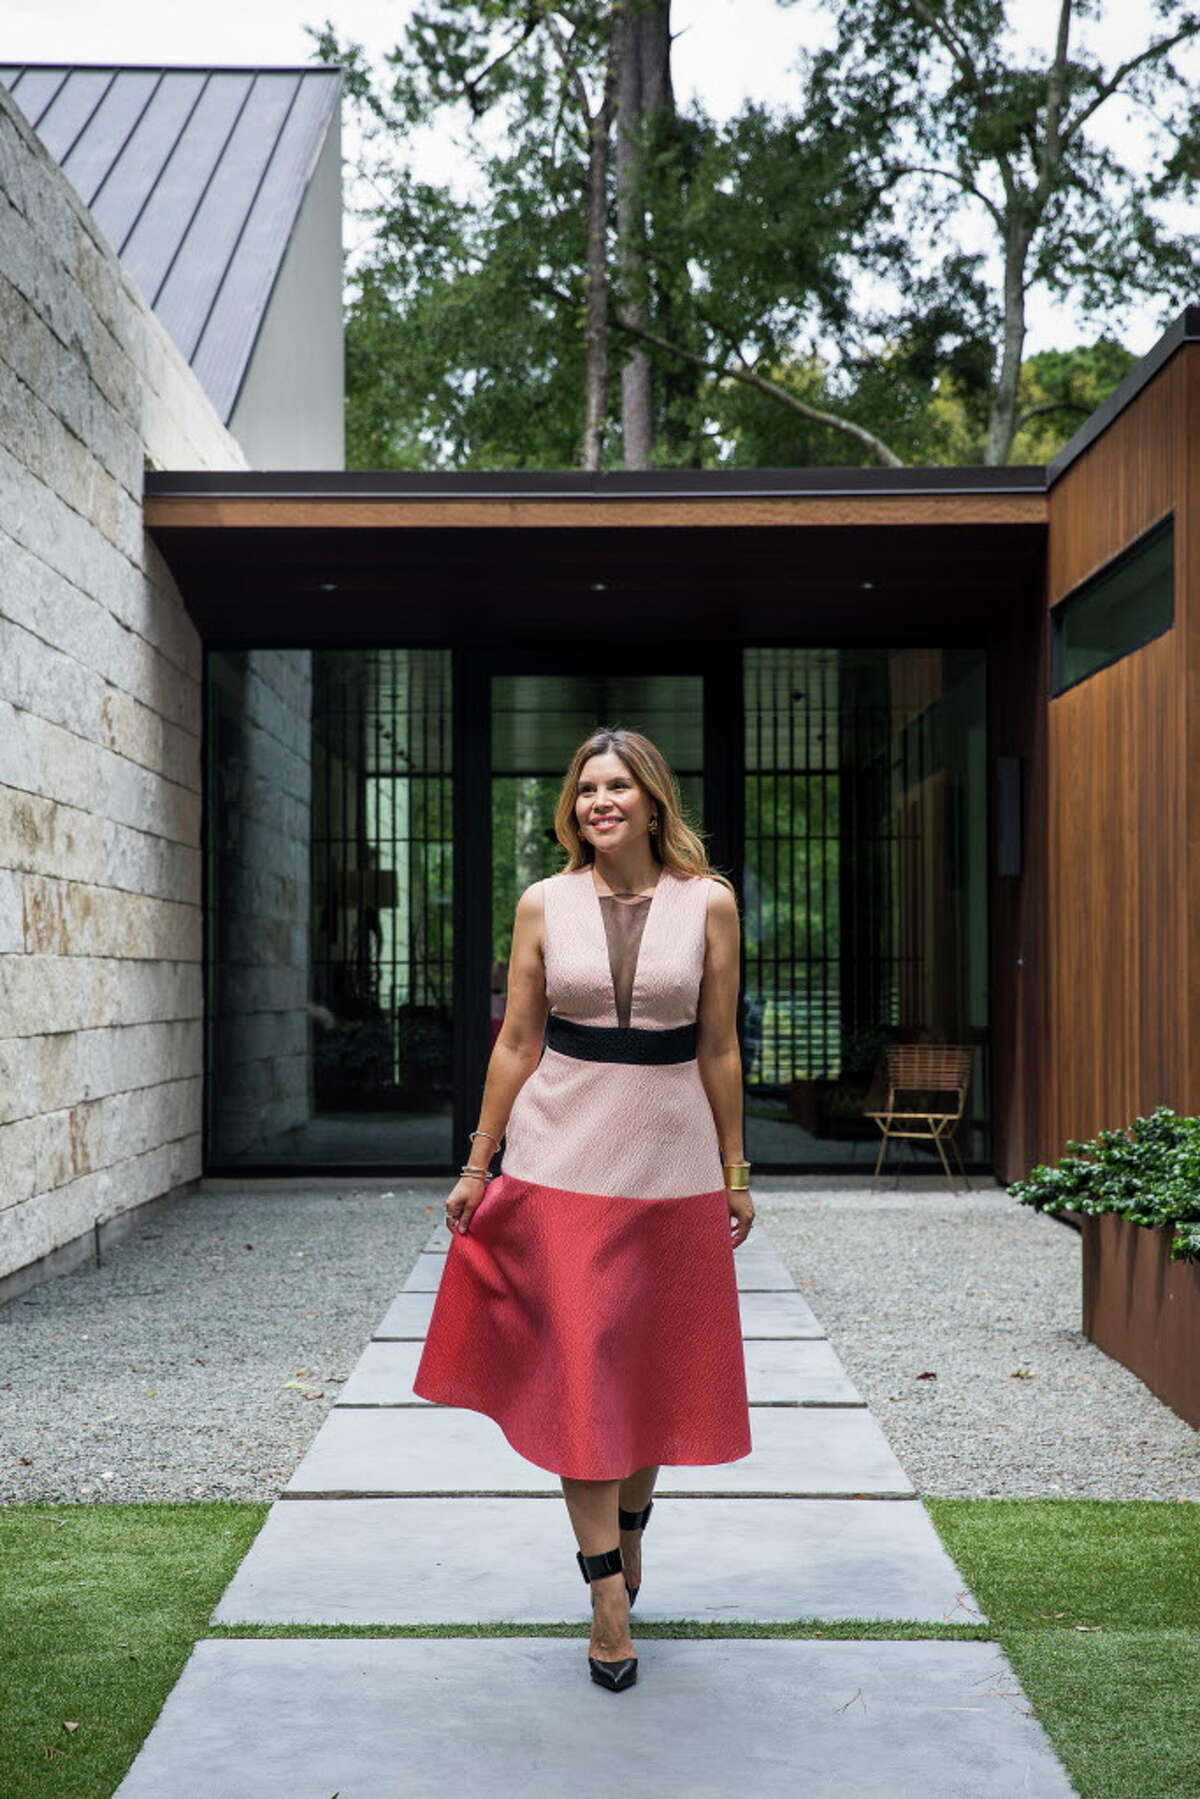 """Estela Cockrell, a former attorney who recently launched """"Switch 2 Pure,"""" an all-natural beauty subscription service stands outside her Houston home Tuesday, Sept. 19, 2017. ( Michael Ciaglo / Houston Chronicle)"""